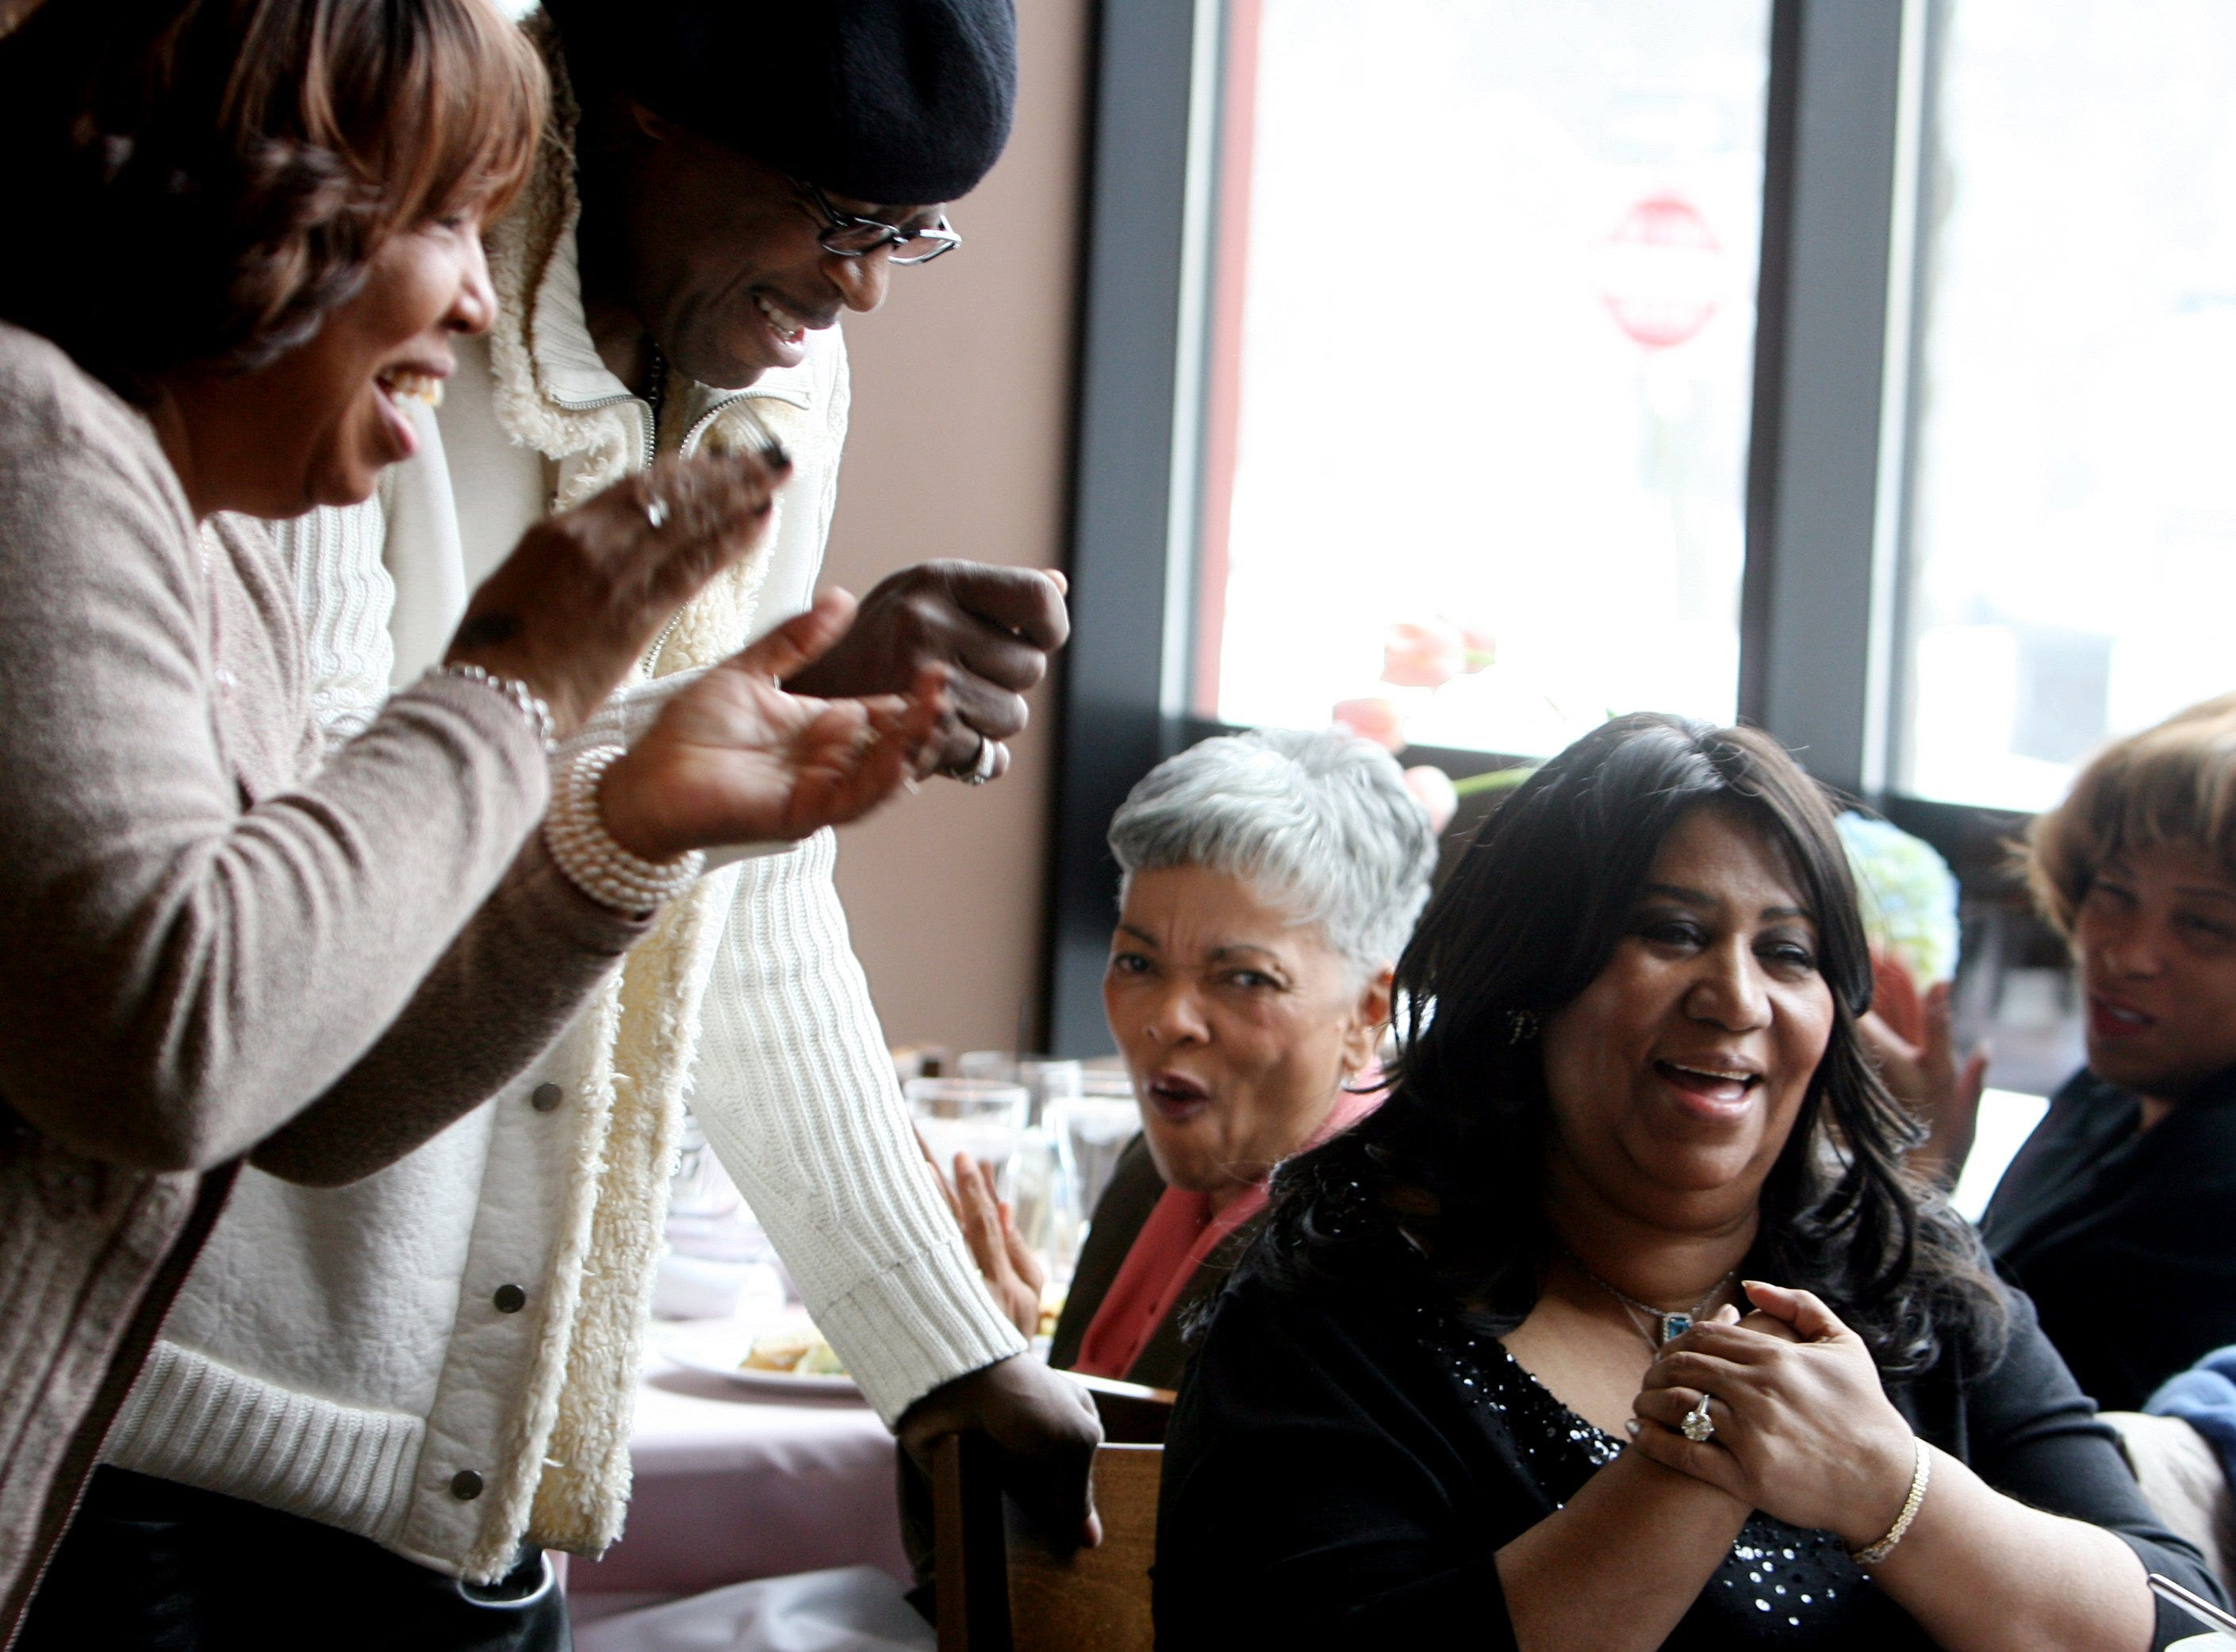 "February 26, 2010; Detroit, MI, USA; Aretha Franklin hosts a high tea listening party at the Detroit Fish Market for her soon-to-be released CD, ""A Woman Falling Out of Love.""  As the songs play her sister-in-law Earline Franklin of Detroit, left and friend Ali Woodson a former lead singer with the Temptations of Los Angeles get up to sing and clap and show their enthusiasm for the new CD. Mandatory Credit: Regina H. Boone/Detroit Free Press via USA TODAY NETWORK ORIG FILE ID:  20180812_ajw_usa_059.jpg"